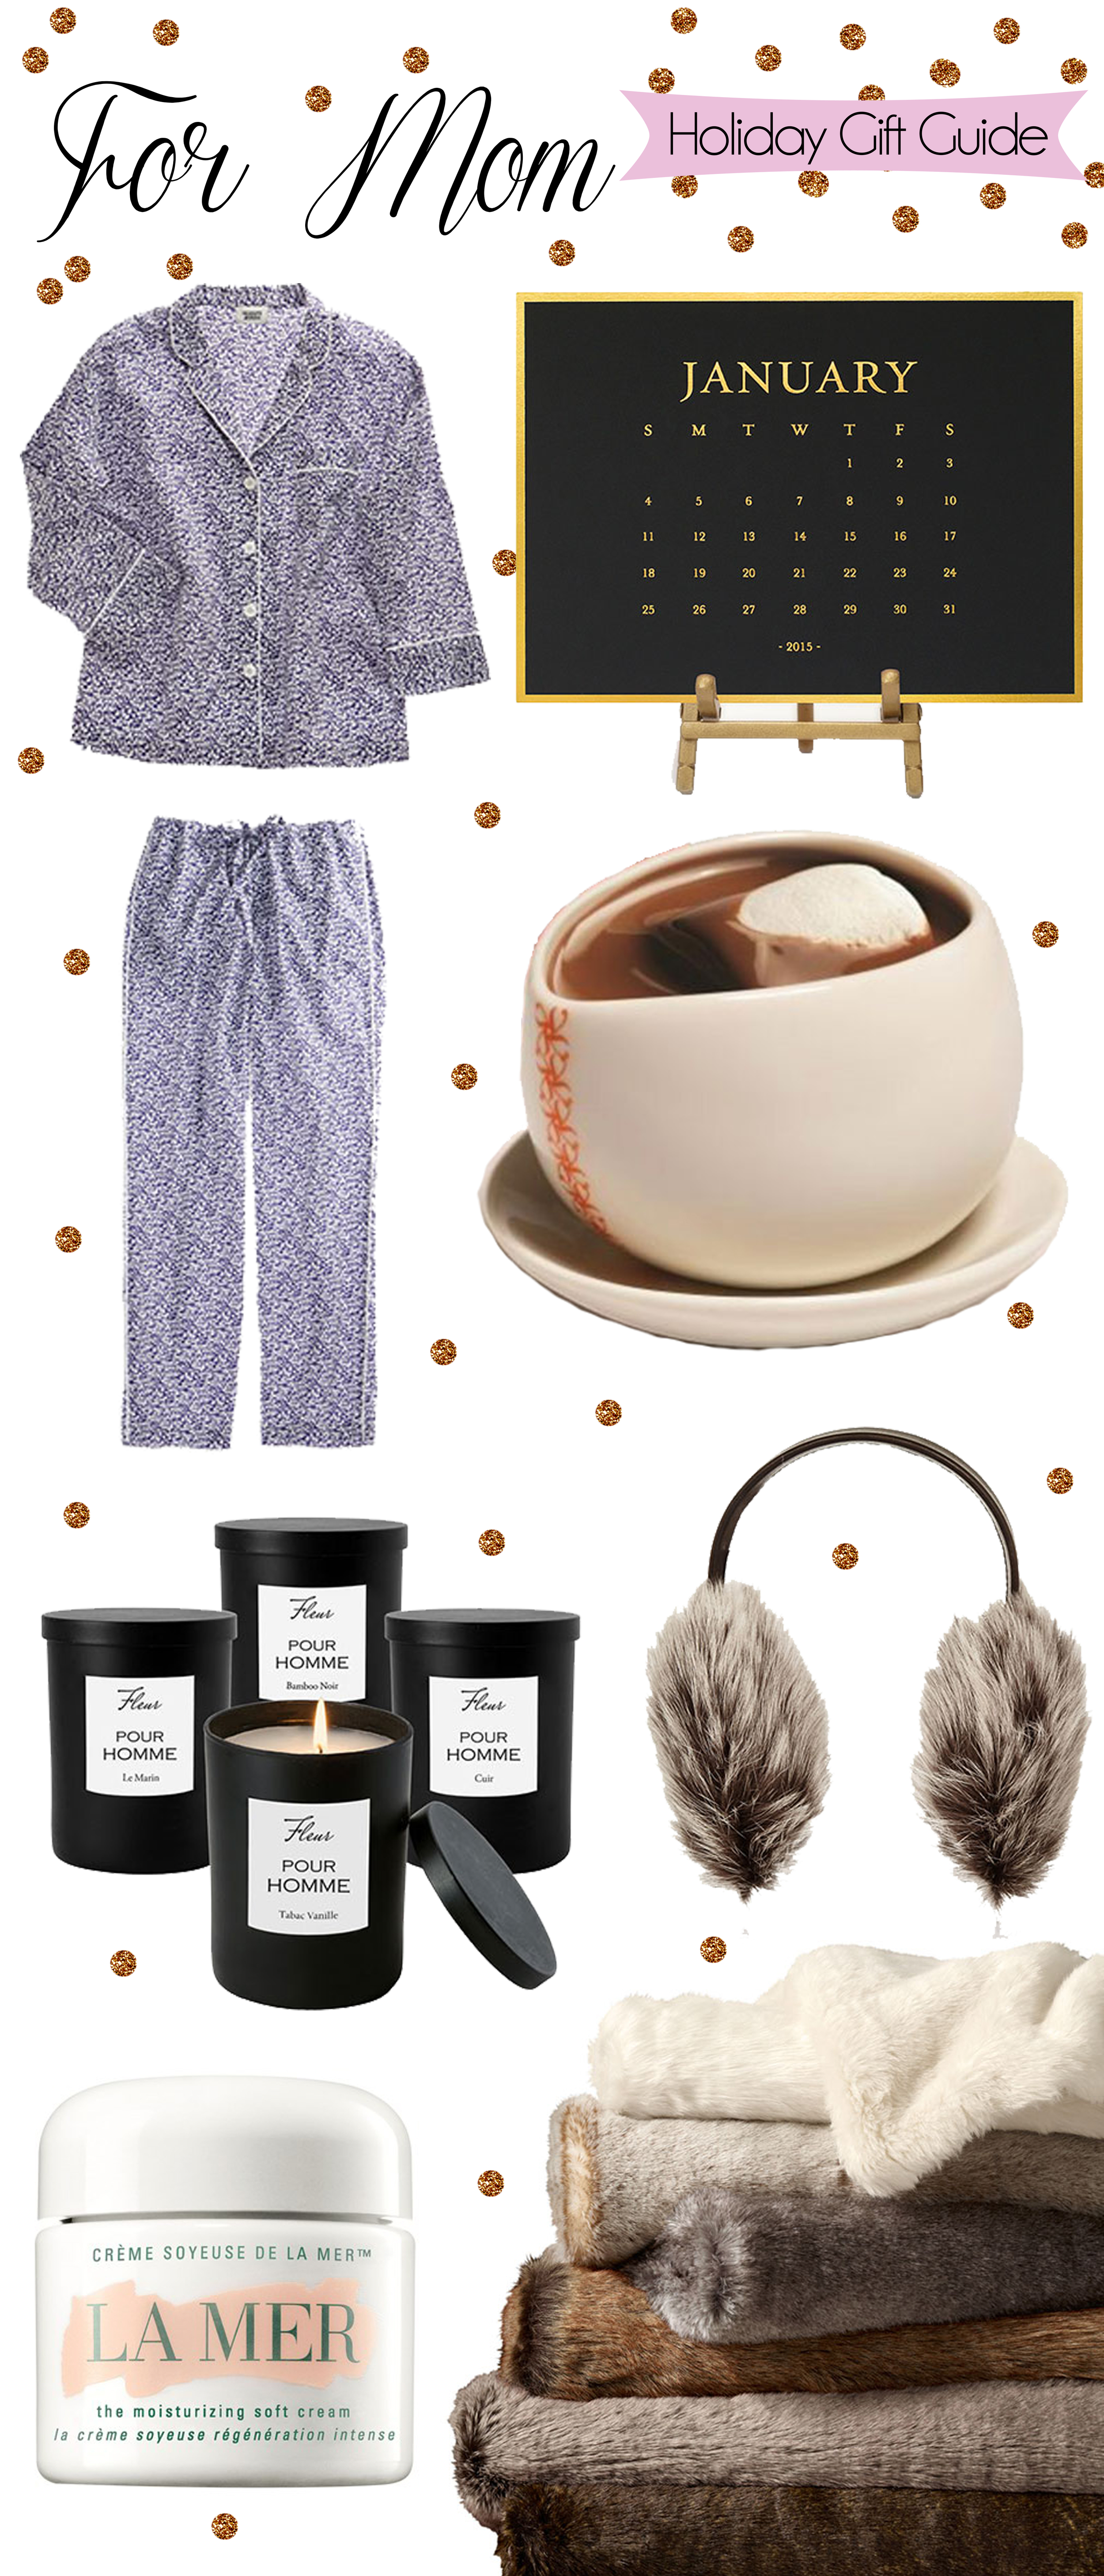 Holiday Gift Guide 2014: For Mom